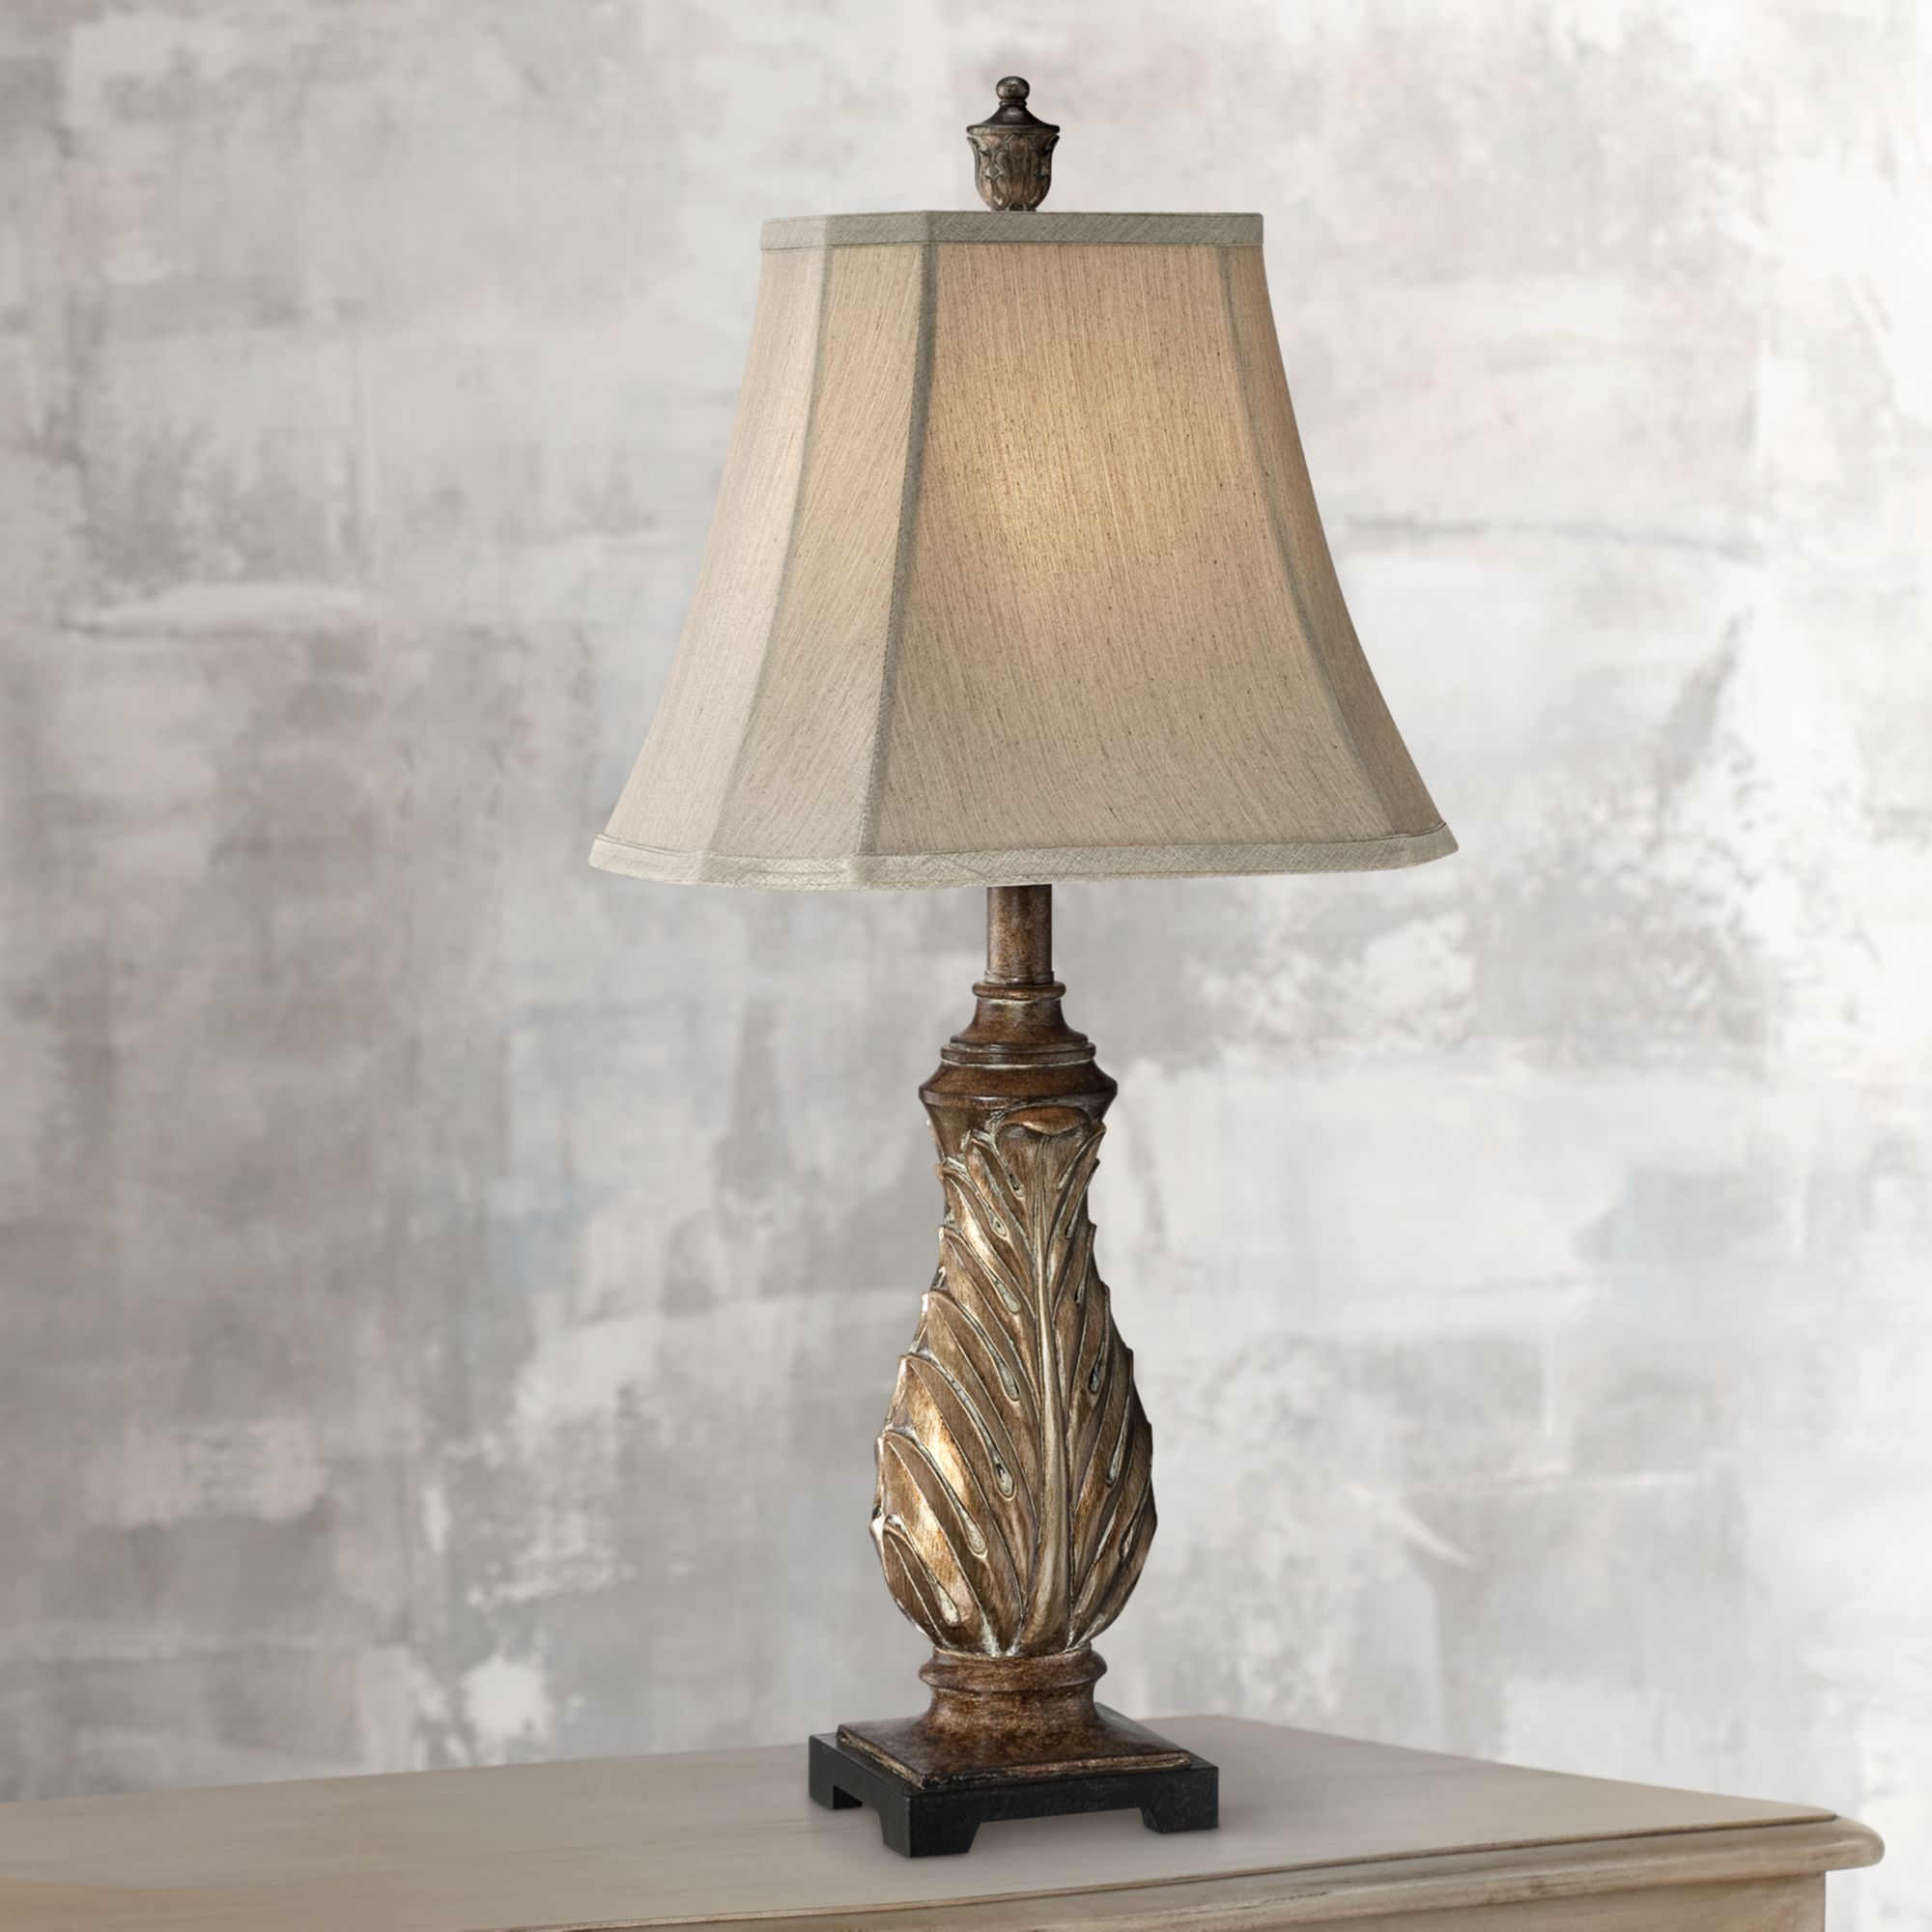 Regency Hill Traditional Table Lamp Aged Gold Leaf Pattern Tan Bell Shade for Living Room Family Bedroom Bedside Nightstand Office